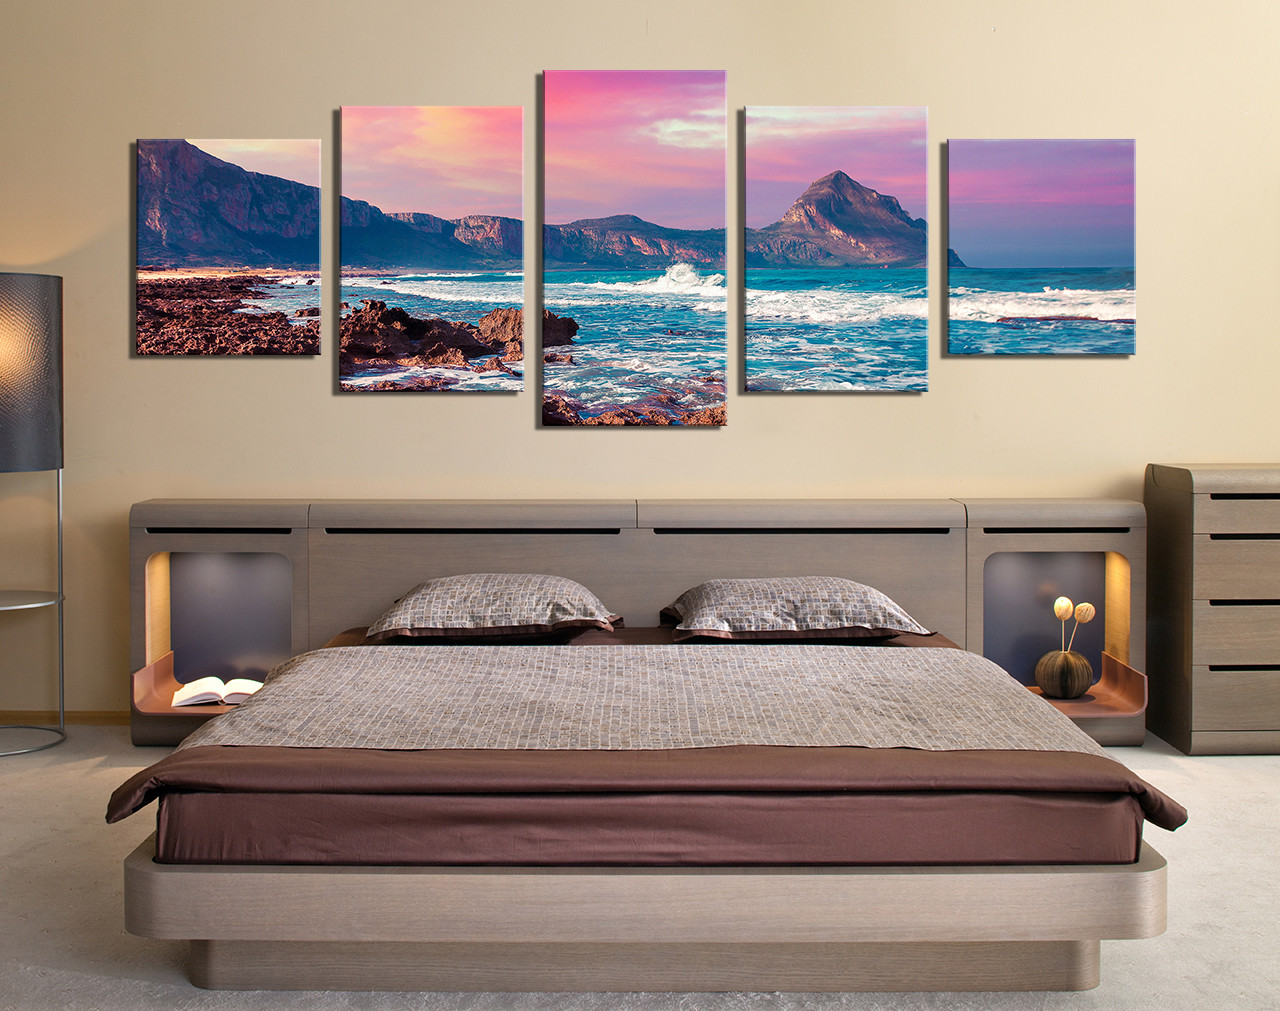 Superb 5 Piece Canvas Wall Art, Bedroom Canvas Photography, Mountain Artwork,  Landscape Large Pictures